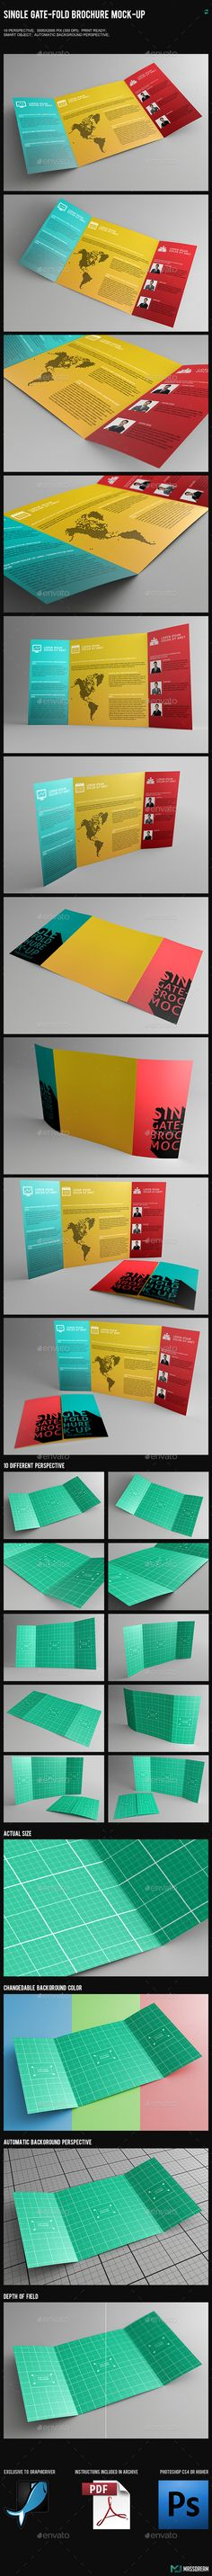 A4 Gatefold Brochure Mockup | Download: Http://Graphicriver.Net